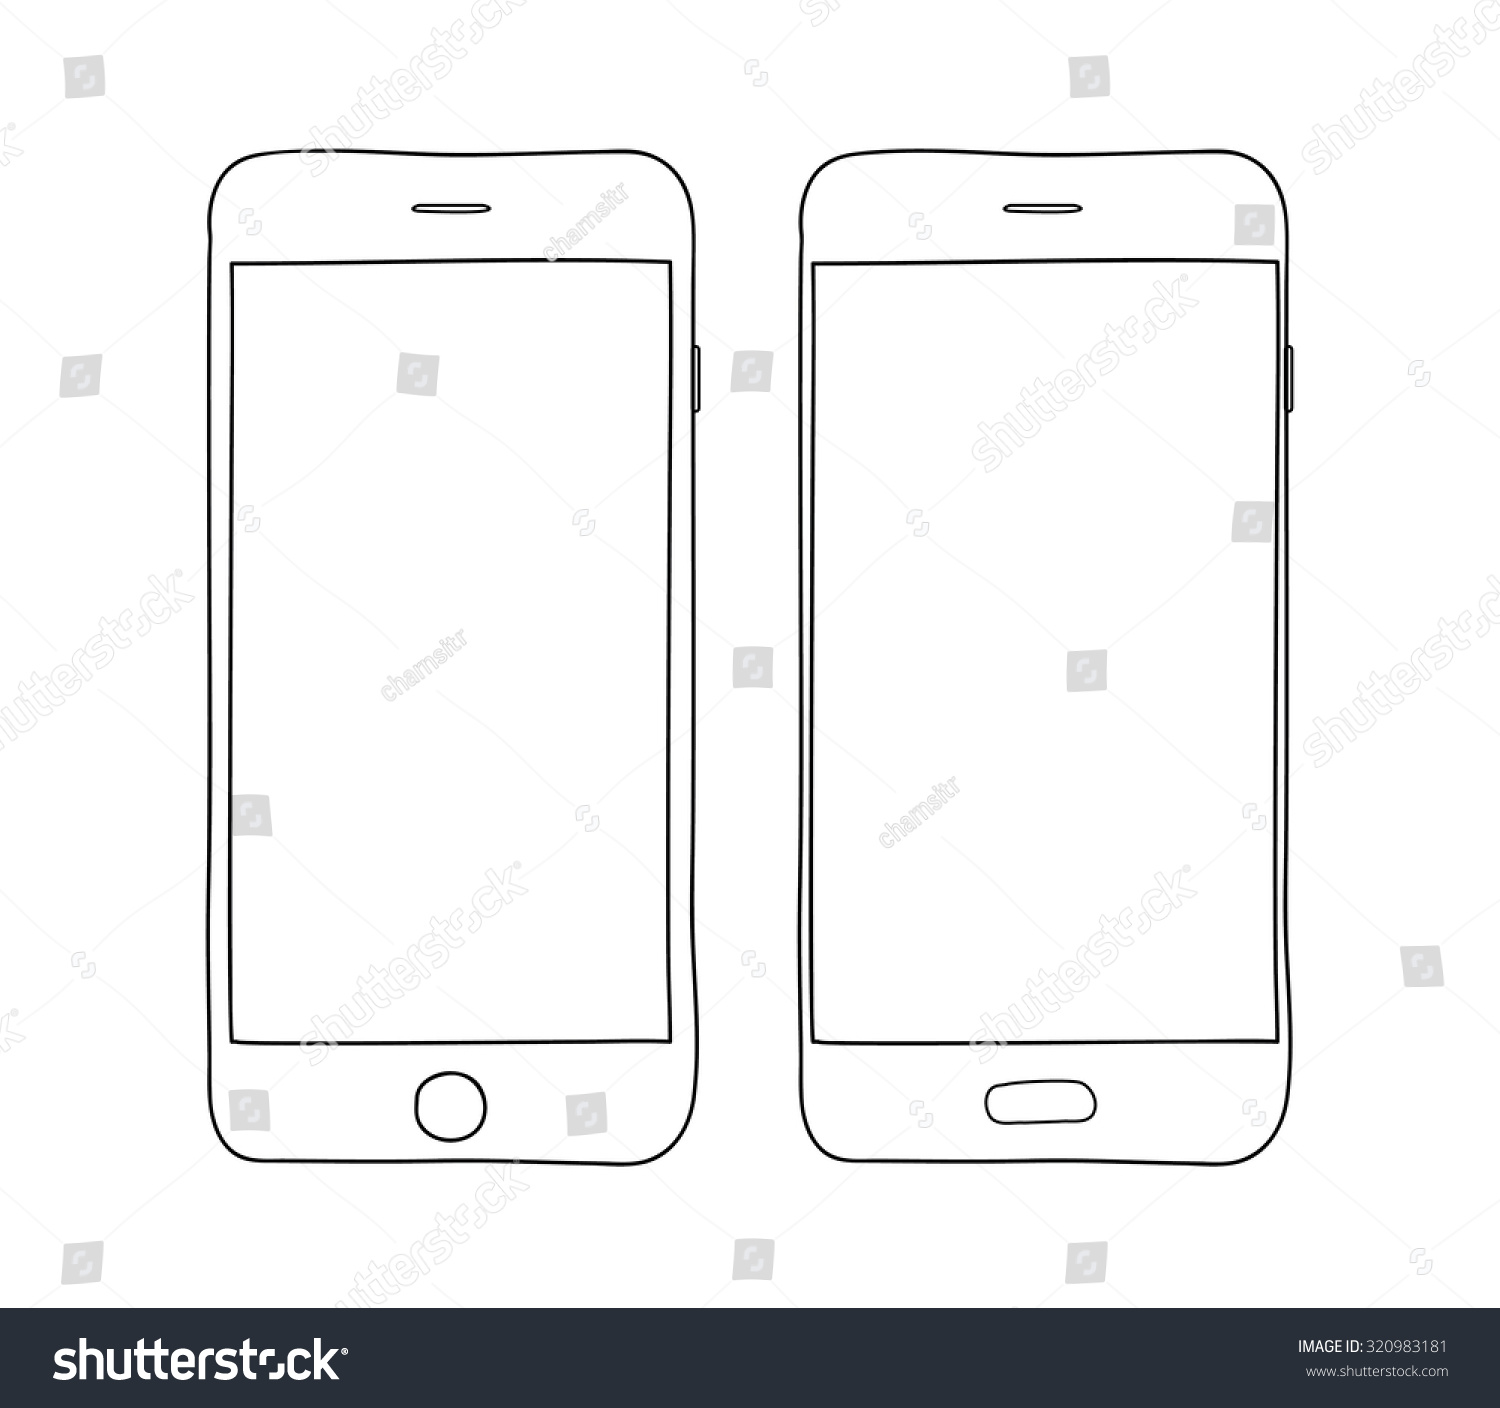 Image Gallery: Mobile phones drawing